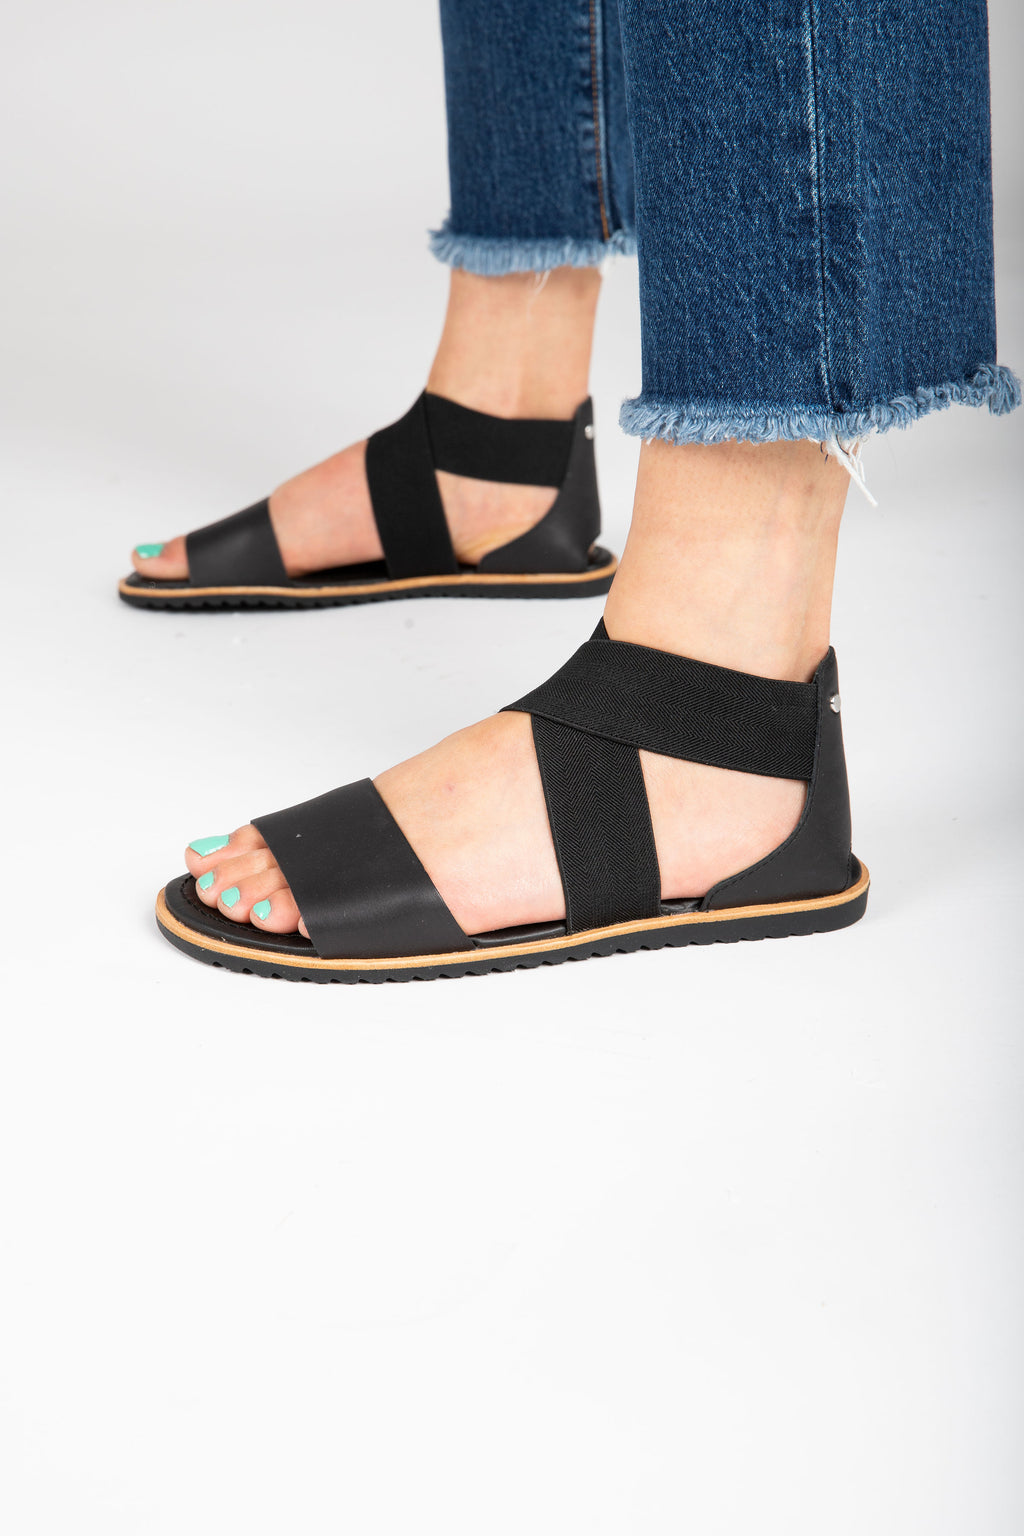 SOREL: Ella Sandal in Black, studio shoot; side view